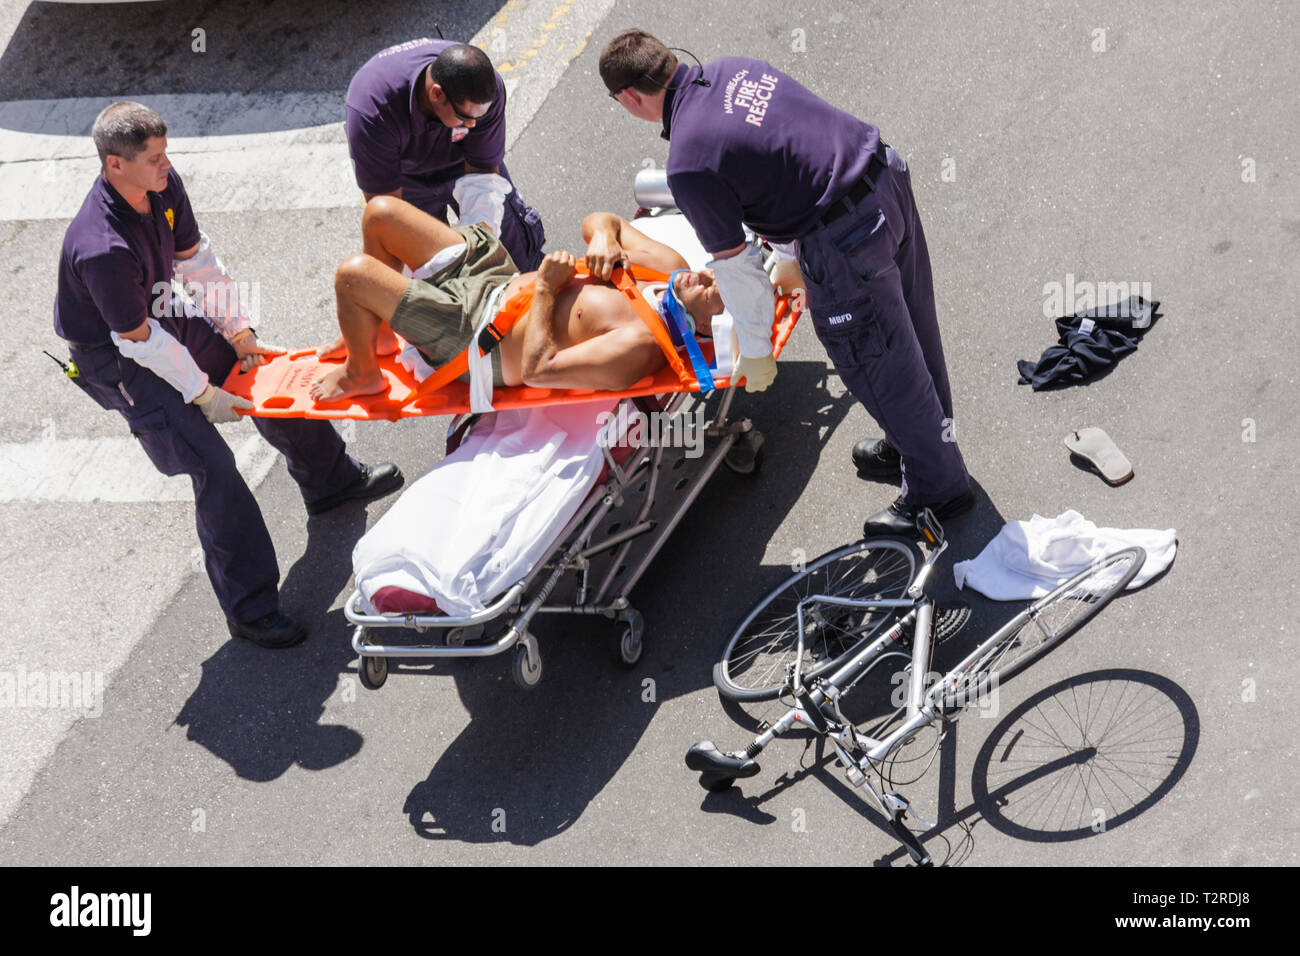 Miami Beach Florida intersection accident cyclist bicycle injury injured man fire rescue paramedic emergency medical service str Stock Photo